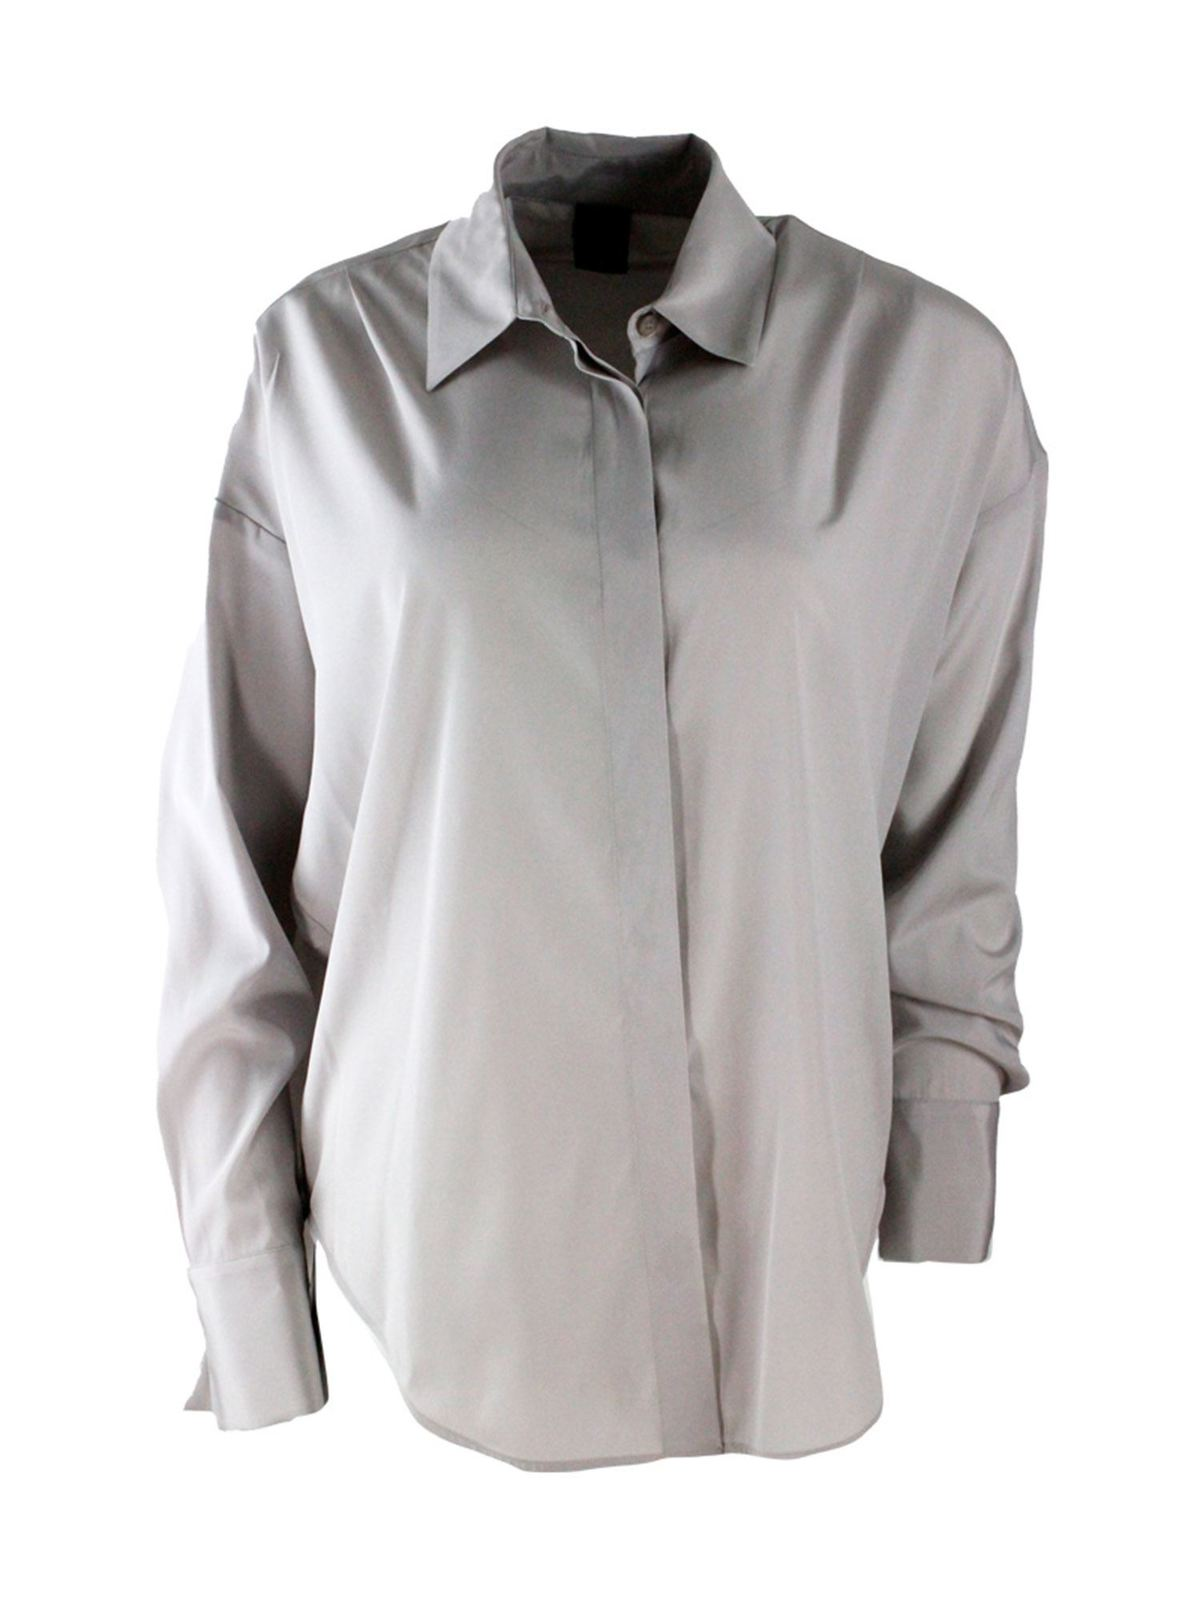 Lorena Antoniazzi SILK SHIRT IN GRAY